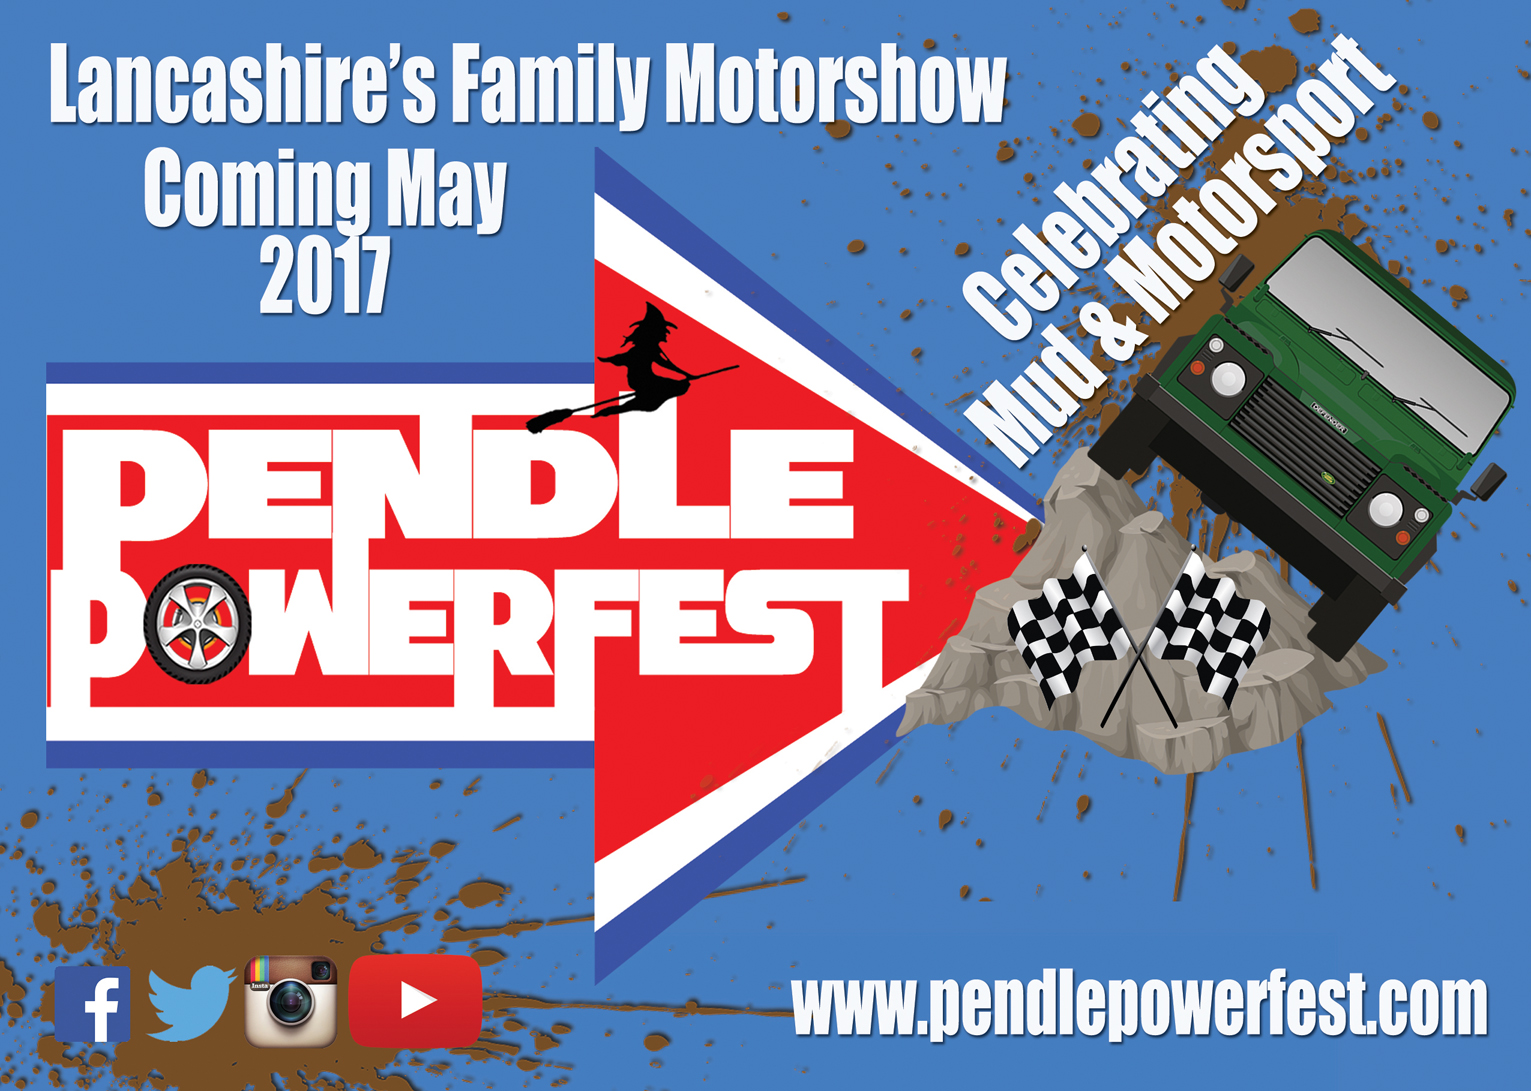 Pendle Powerfest